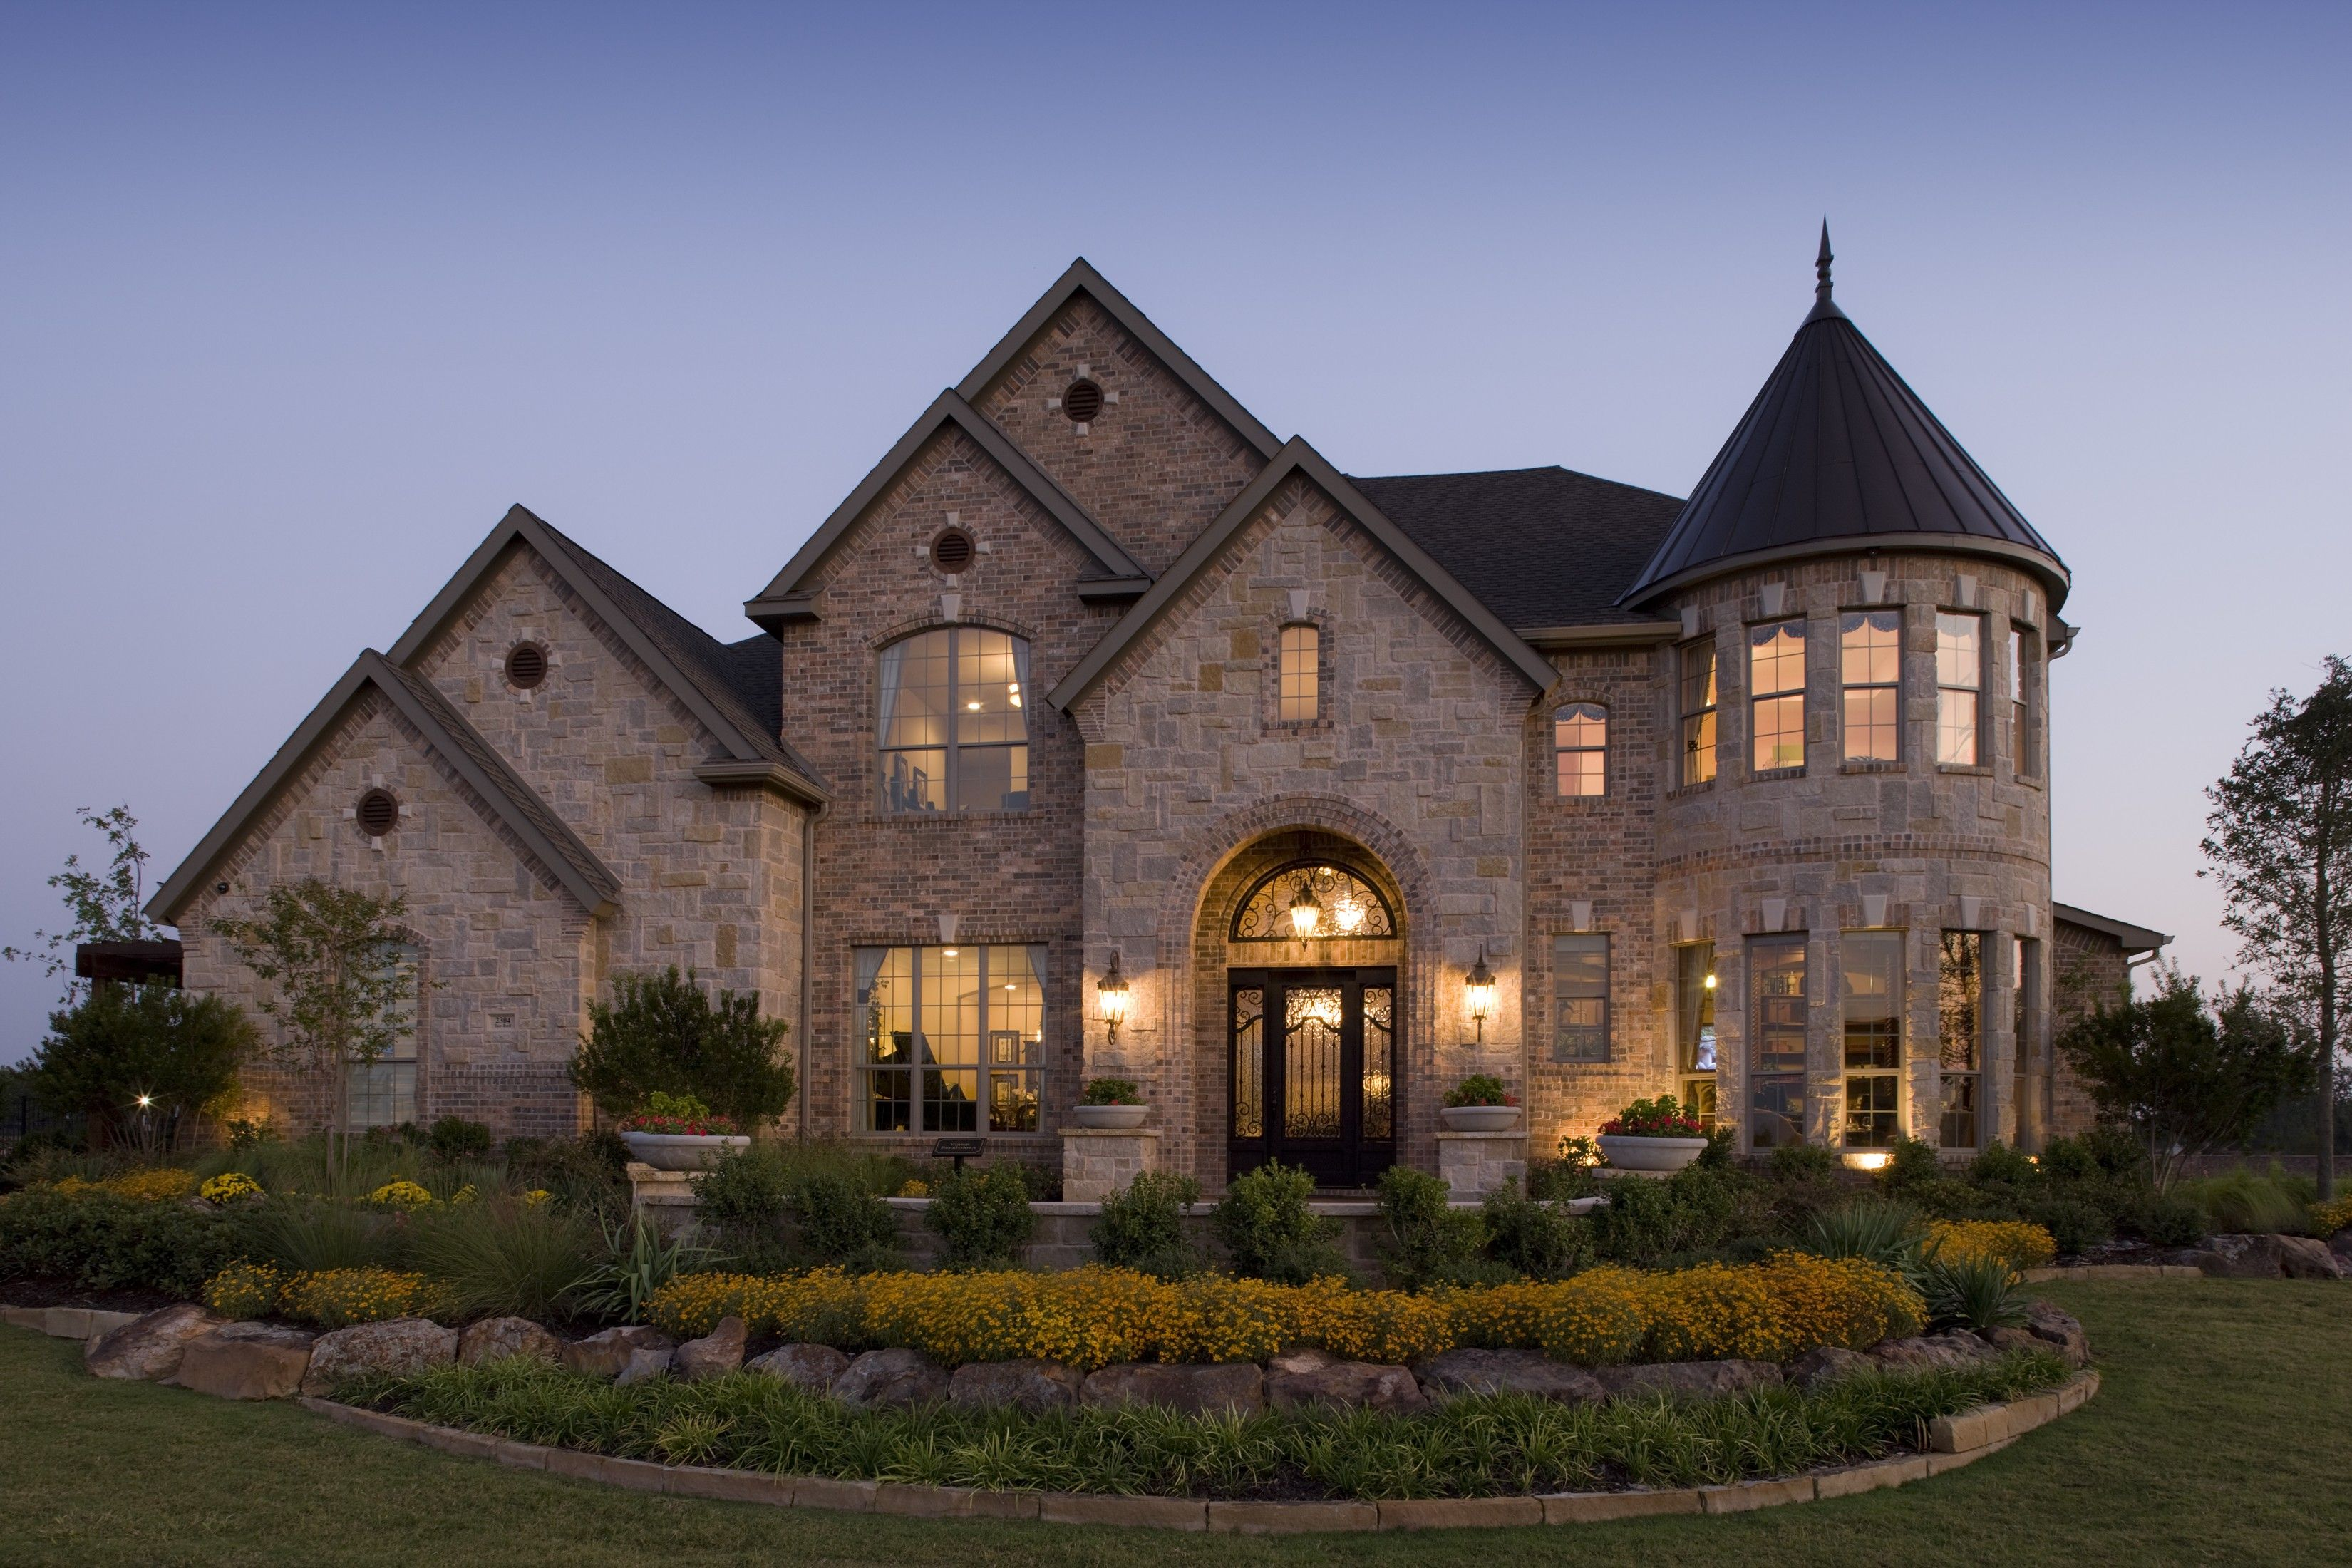 luxury homes exterior brick - Luxury Homes Exterior Brick